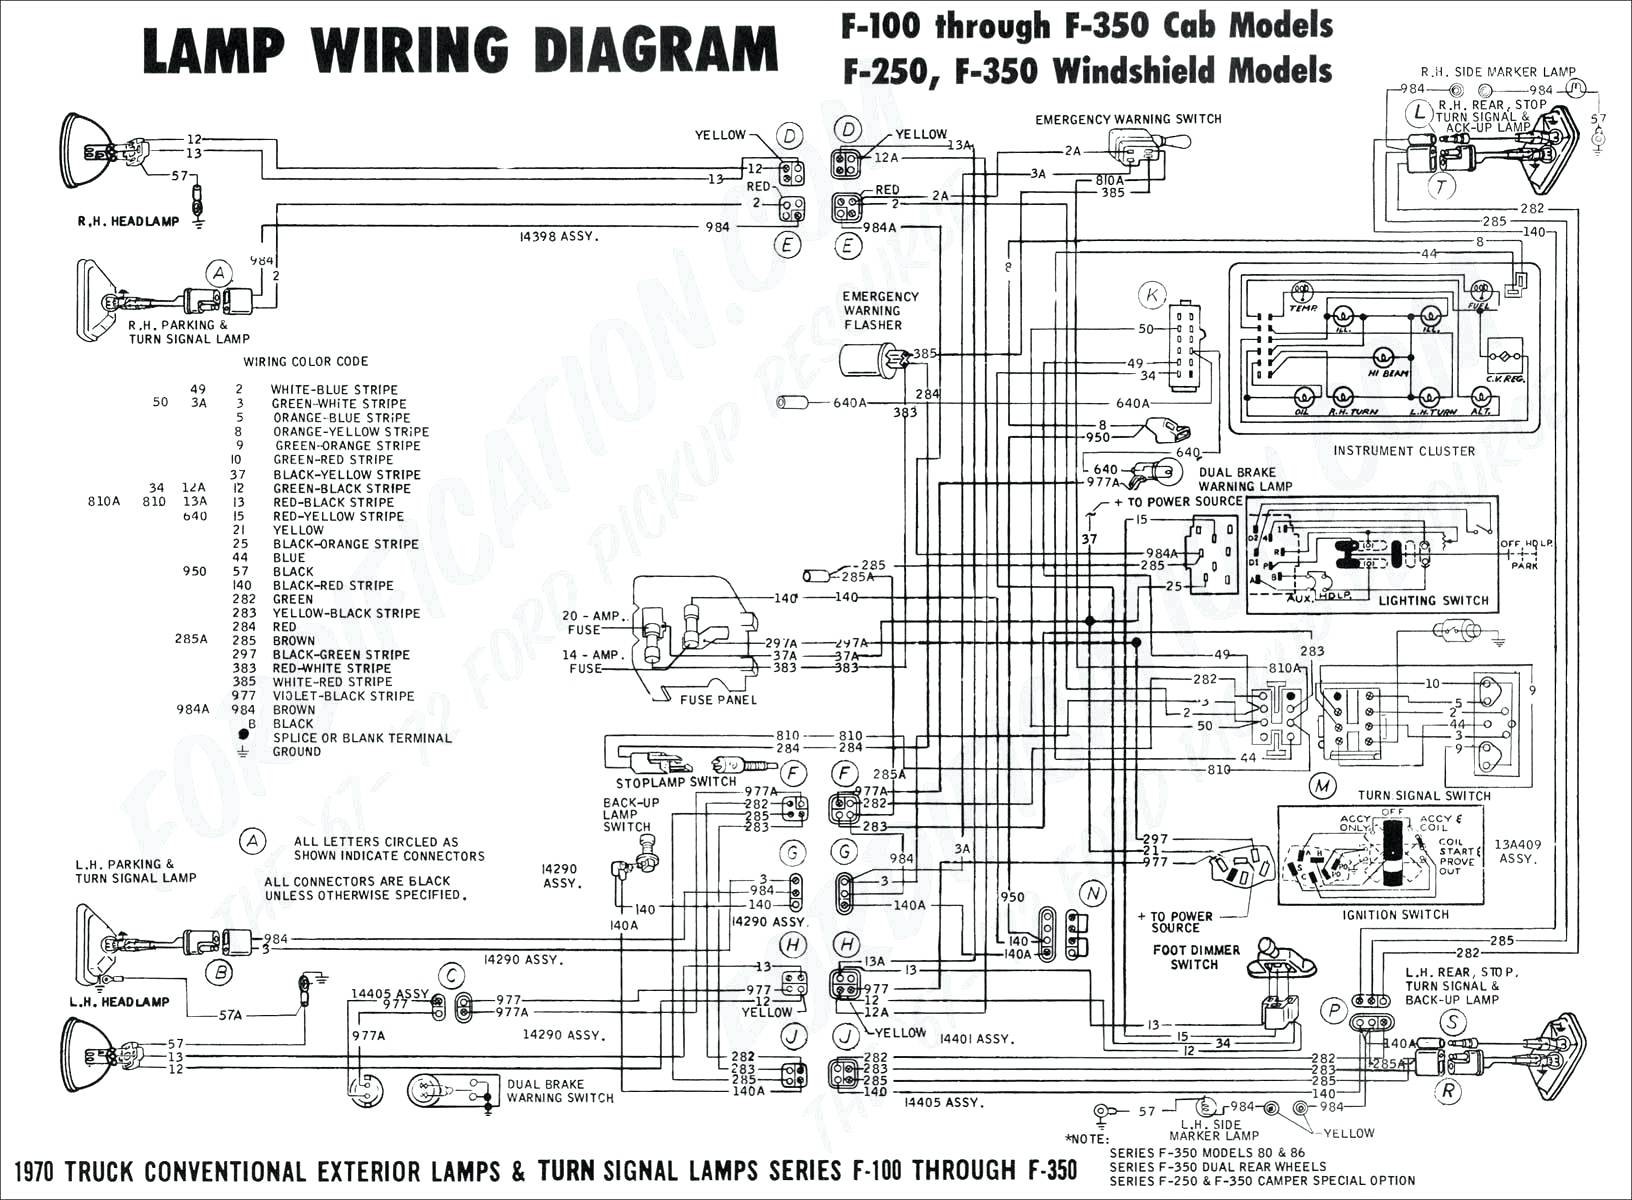 Vintage Ignition Wiring Diagram Msd 7c - General Wiring Diagrams on